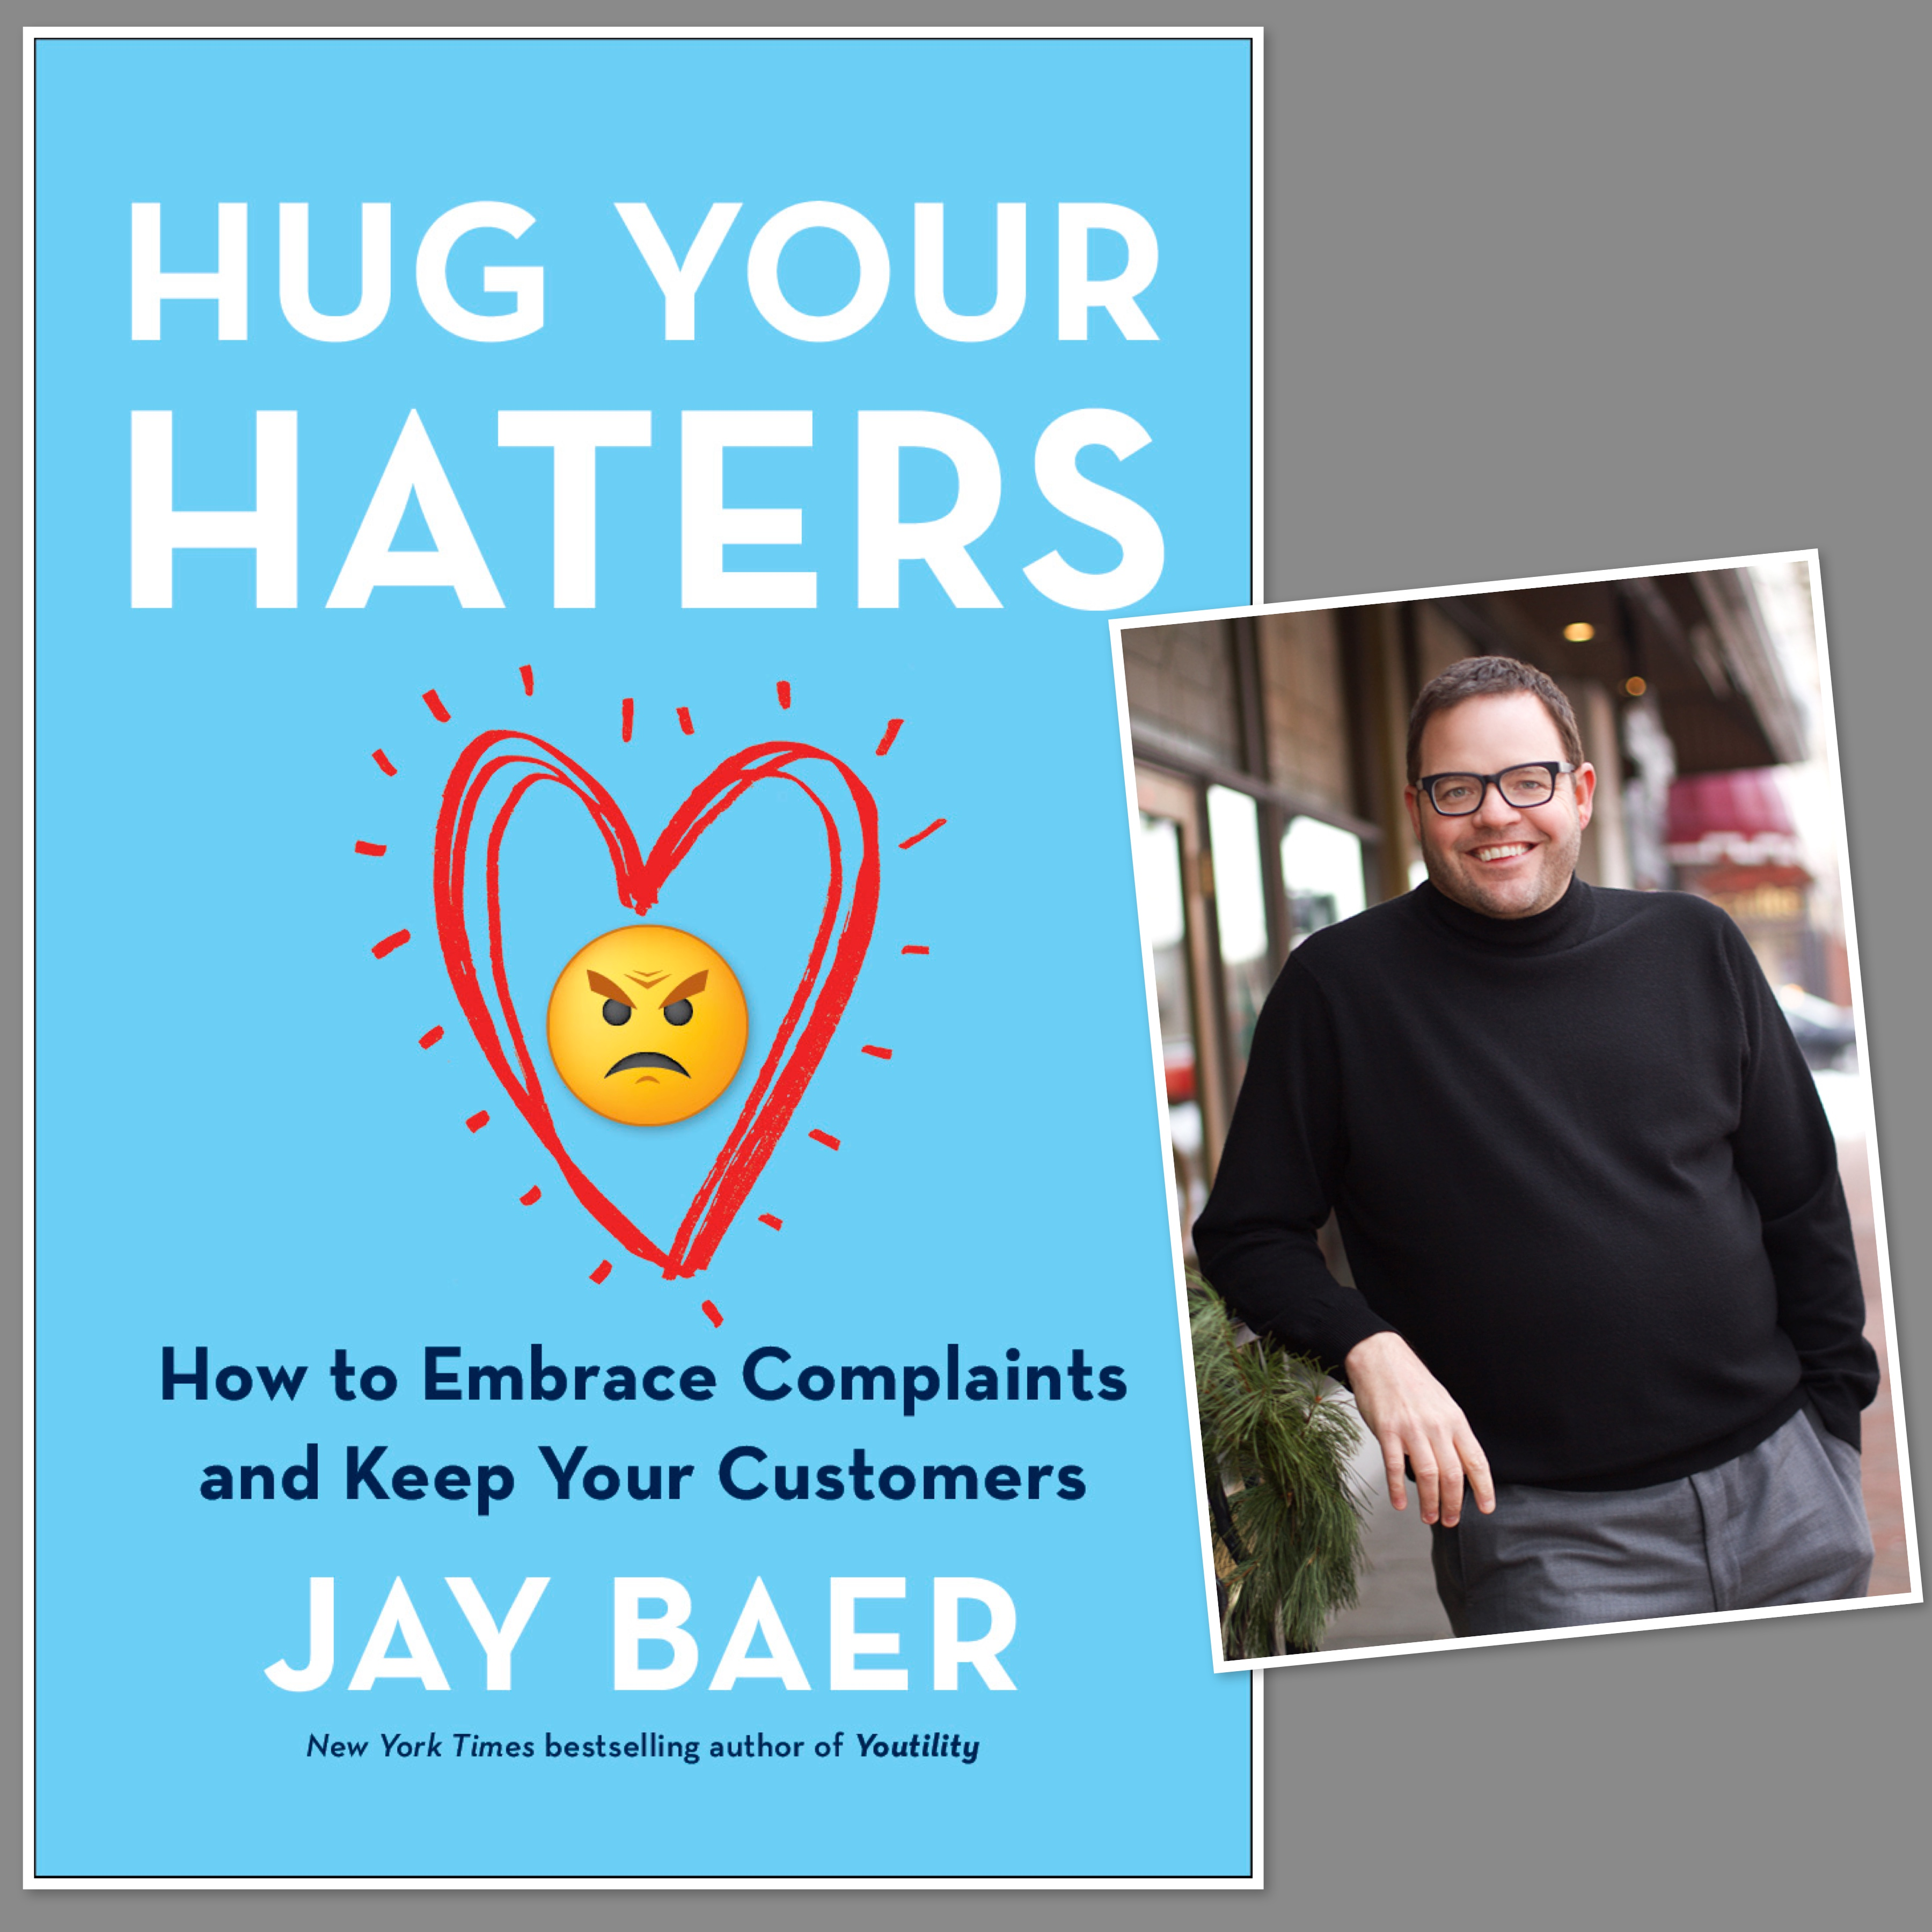 content marketing podcast 161 jay baer on hug your haters